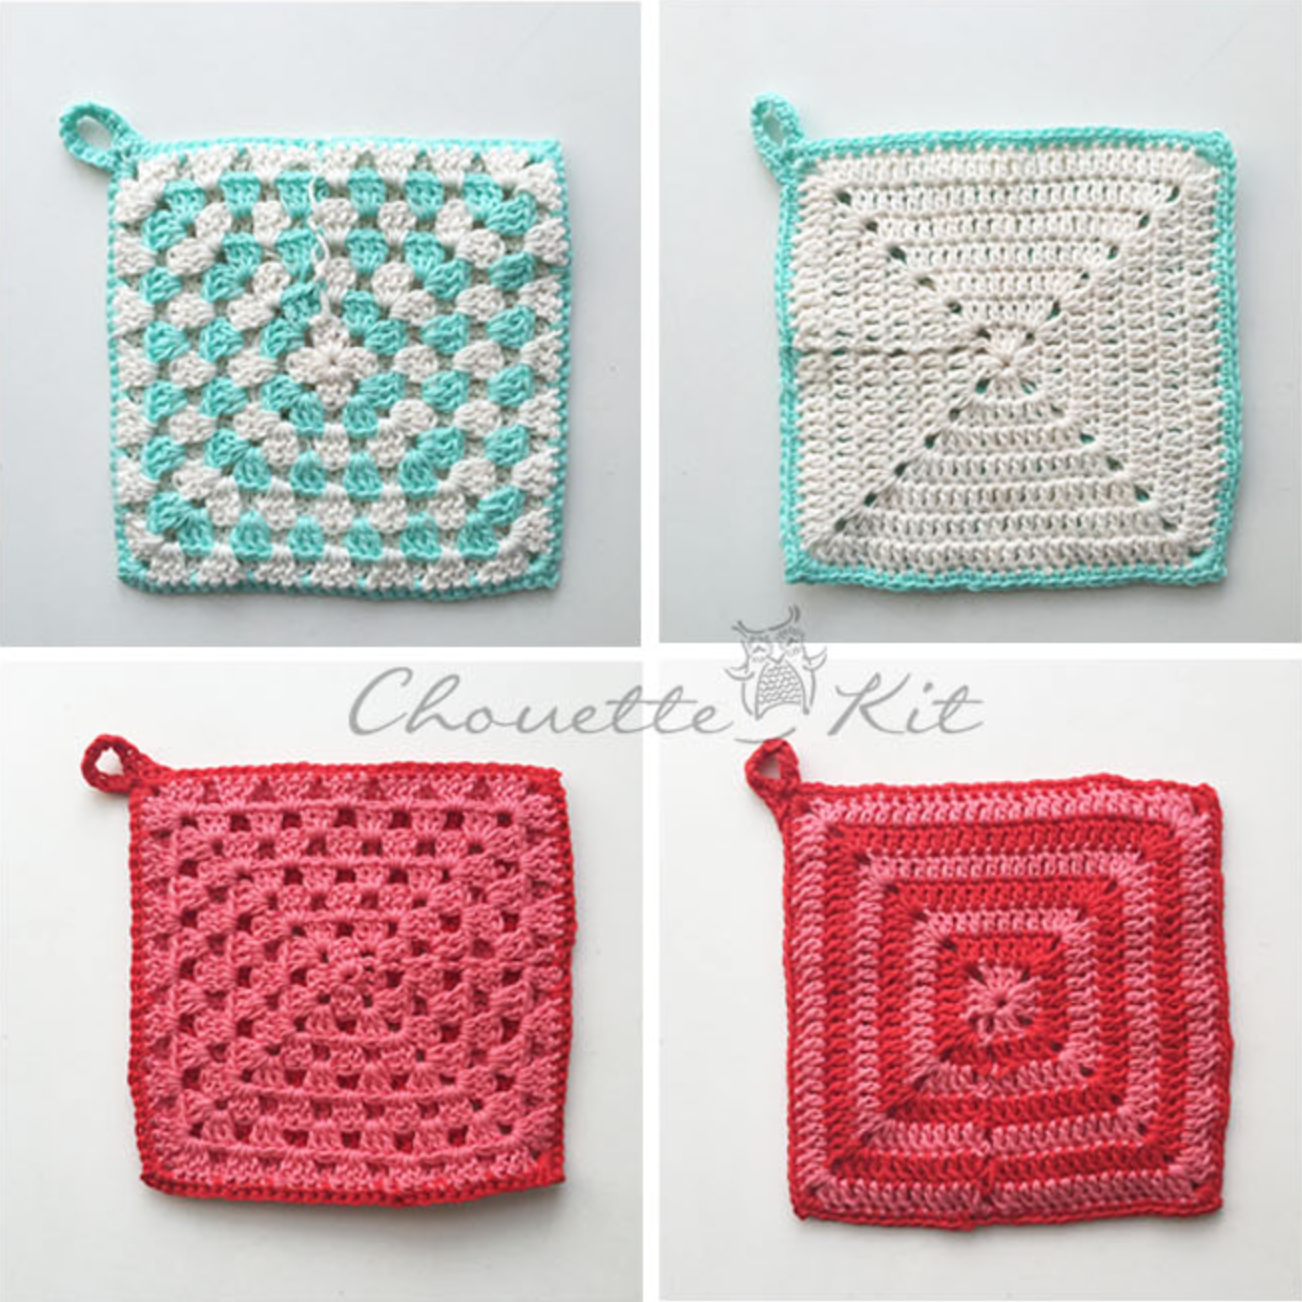 Tuto Manique Au Crochet Chouette Kit